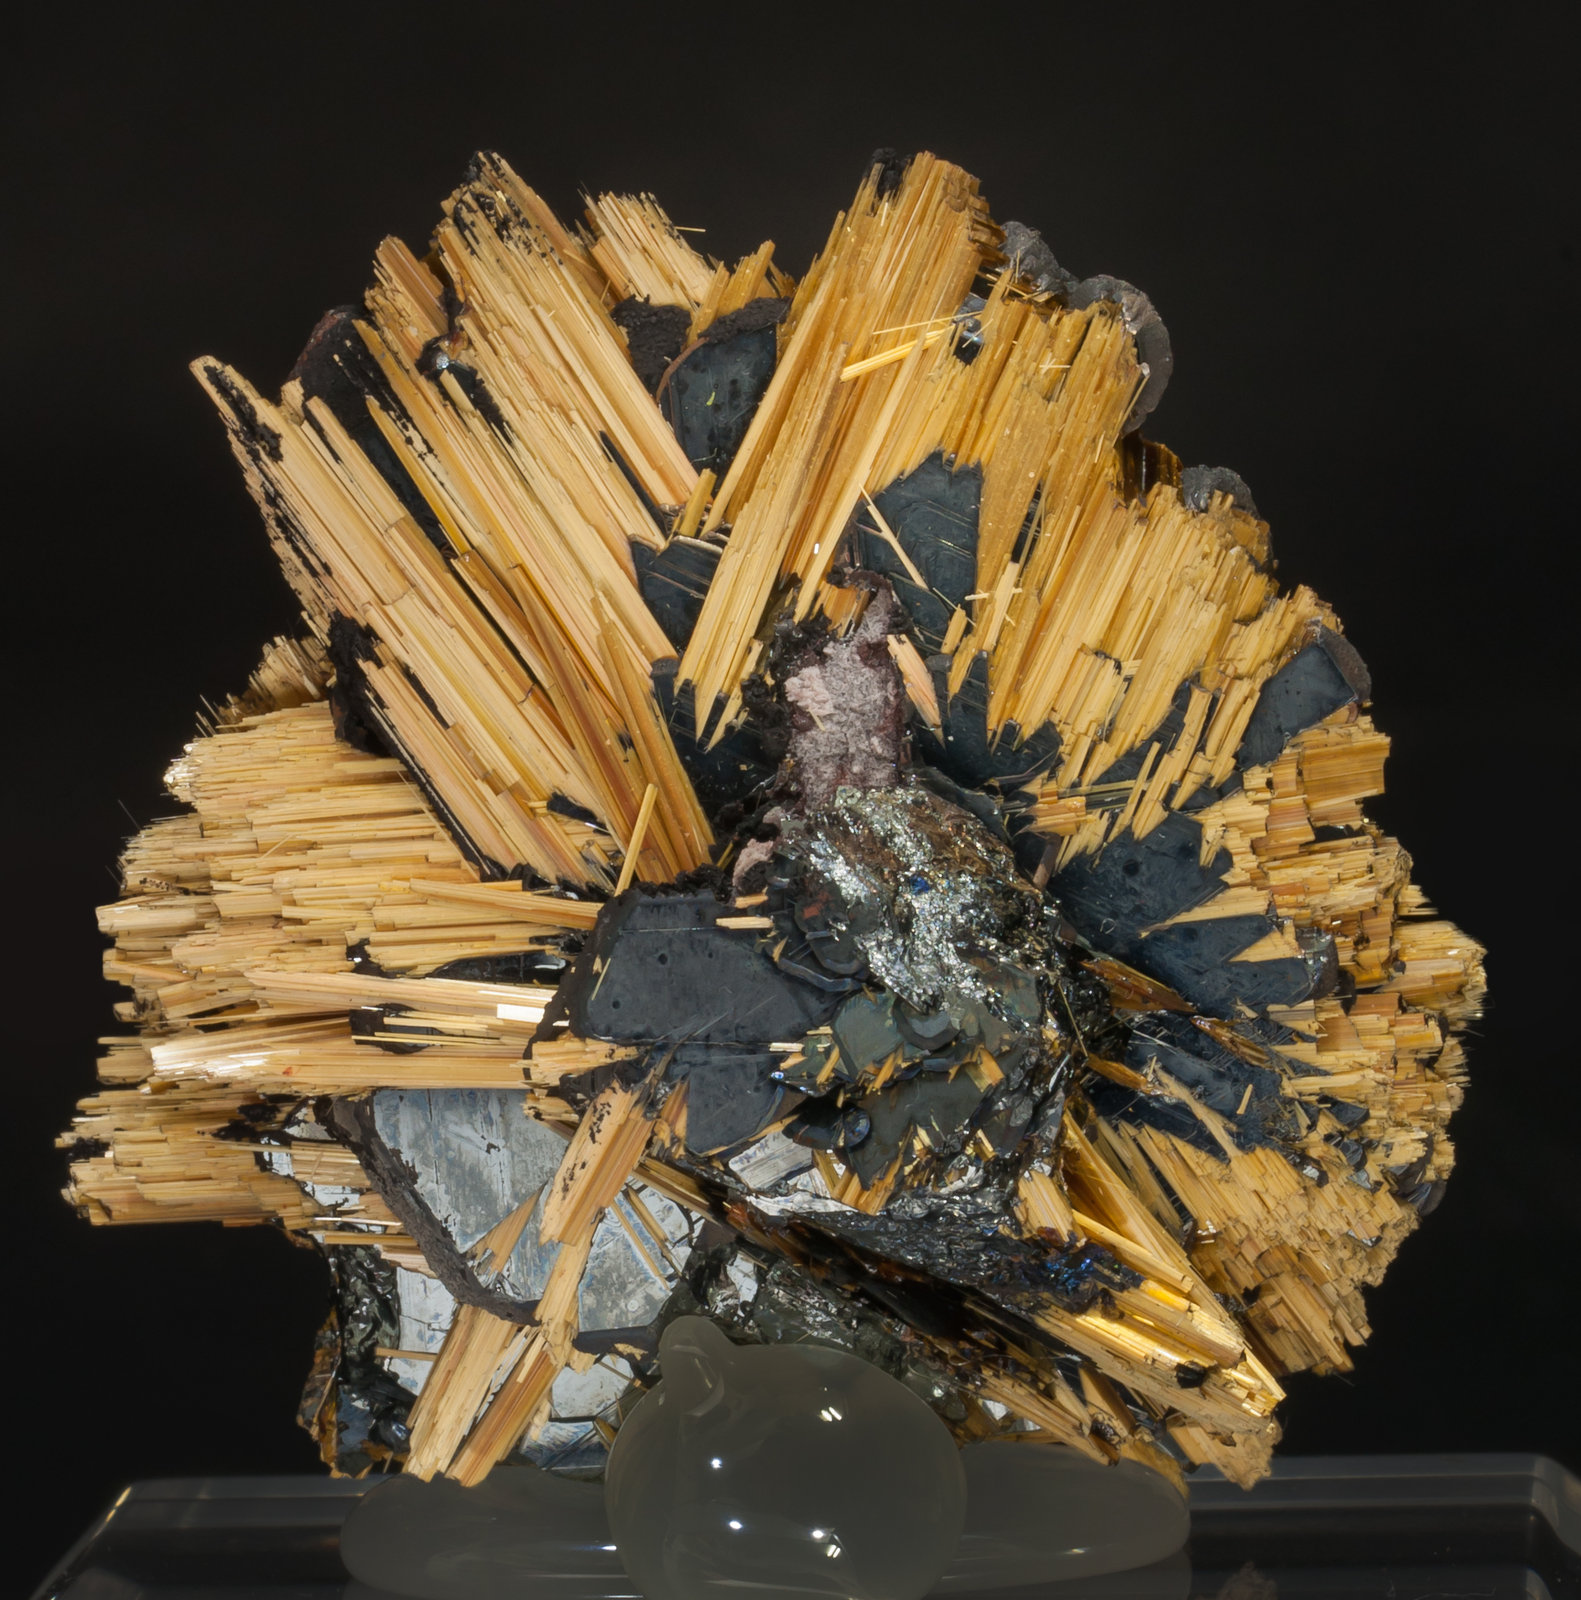 specimens/s_imagesAE6/Rutile-MC69AE6r.jpg